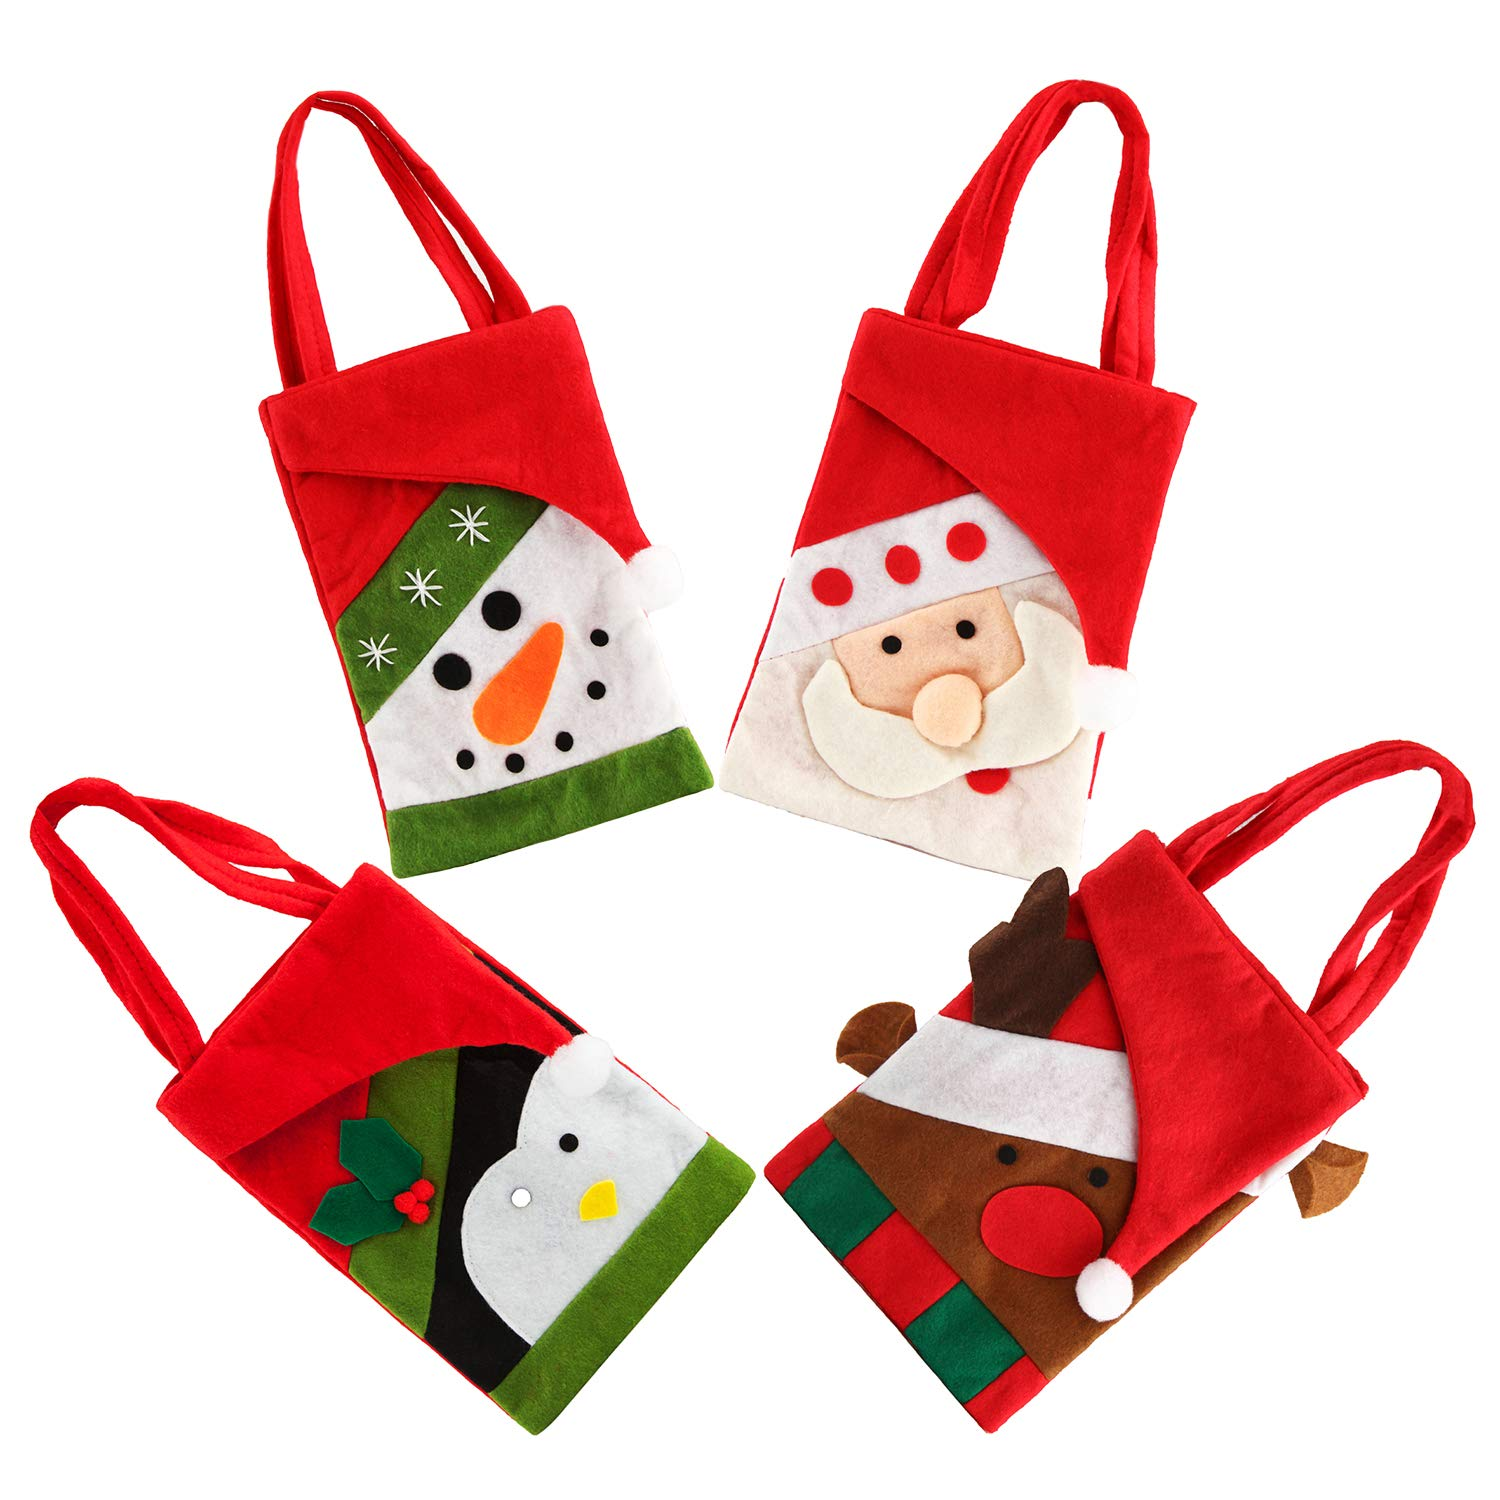 4pcs Christmas Candy Bags Small Handbag Xmas Snowman Santa Claus Gift Treat Goodie Tote Bag for Kids Children Home Decorations Shopping, 8.2×5.7 Inch